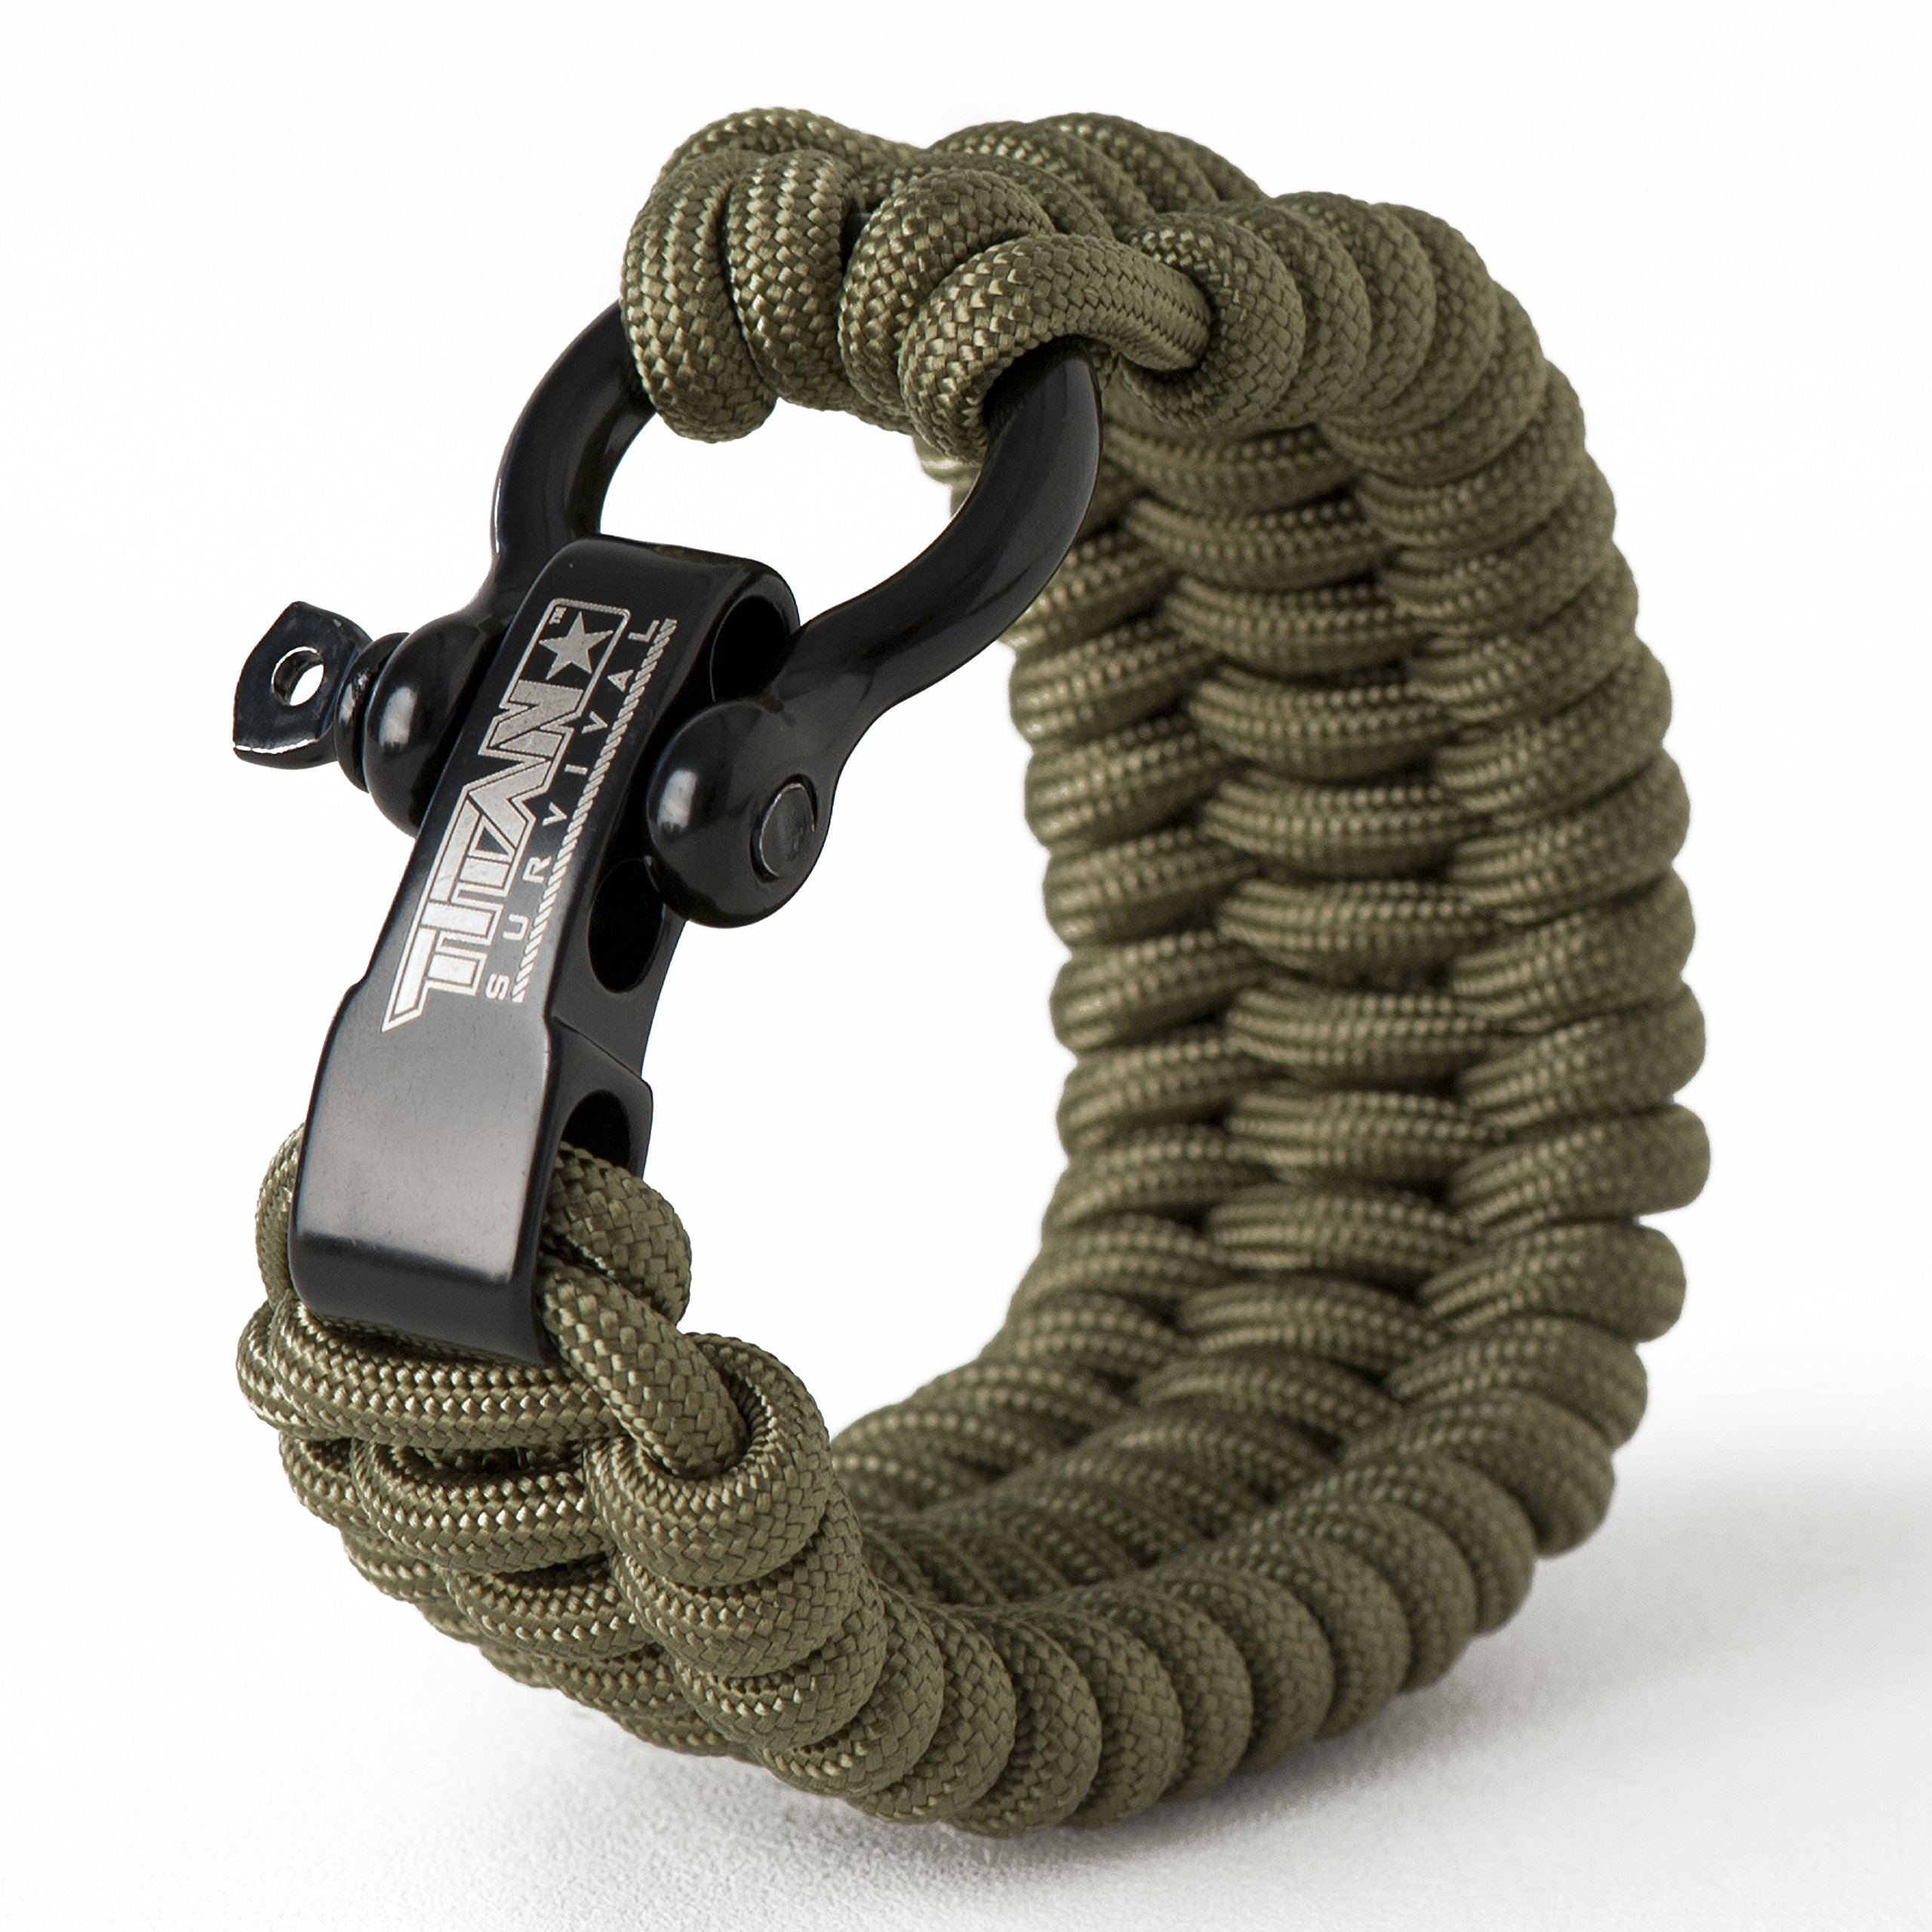 Titan Paracord Survival Bracelet | Olive DRAB | Large (Fits 8'' - 9'' Wrist) | Made with Authentic Patented SurvivorCord (550 Paracord, Fishing line, Snare Wire, and Waxed Jute for Fires).